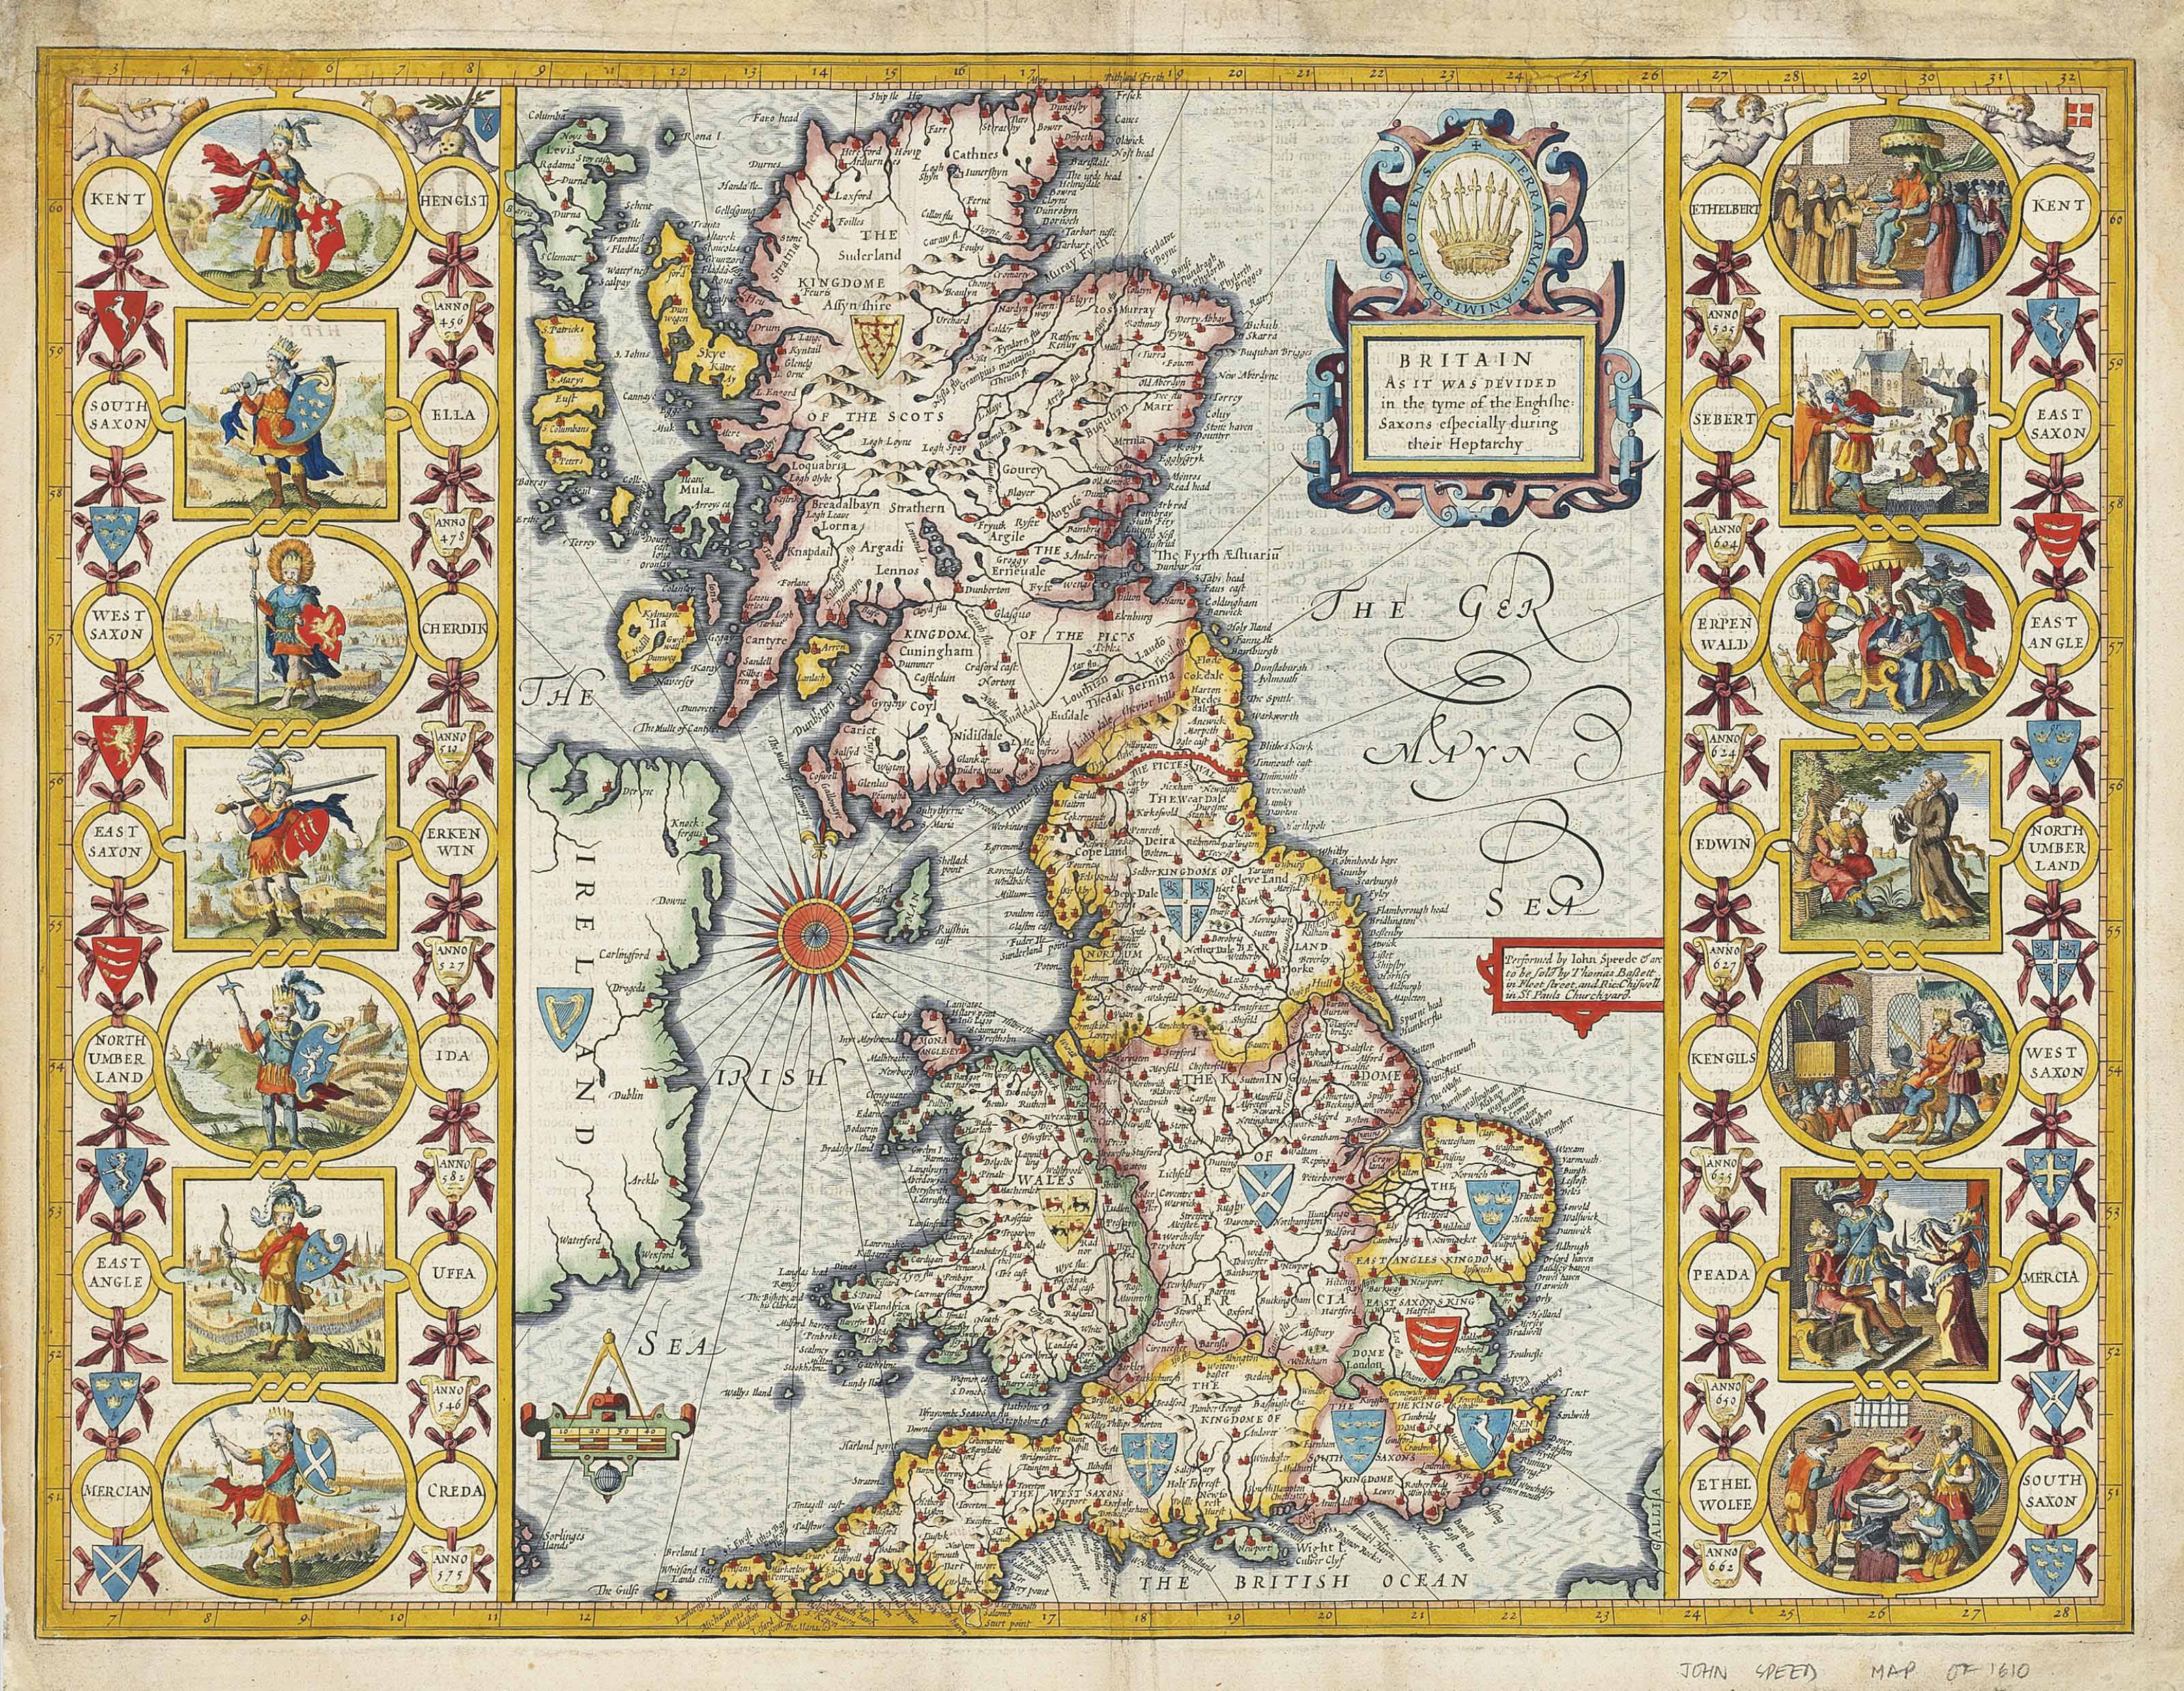 SPEED, John (1552-1629) Britain as it was devided in the tyme of the Englishe-Saxons especially during their Heptarchy. London: Thomas Bassett, [1676]. Double-page hand-coloured engraved map (margins restored and rather soiled), 433 x 539mm.